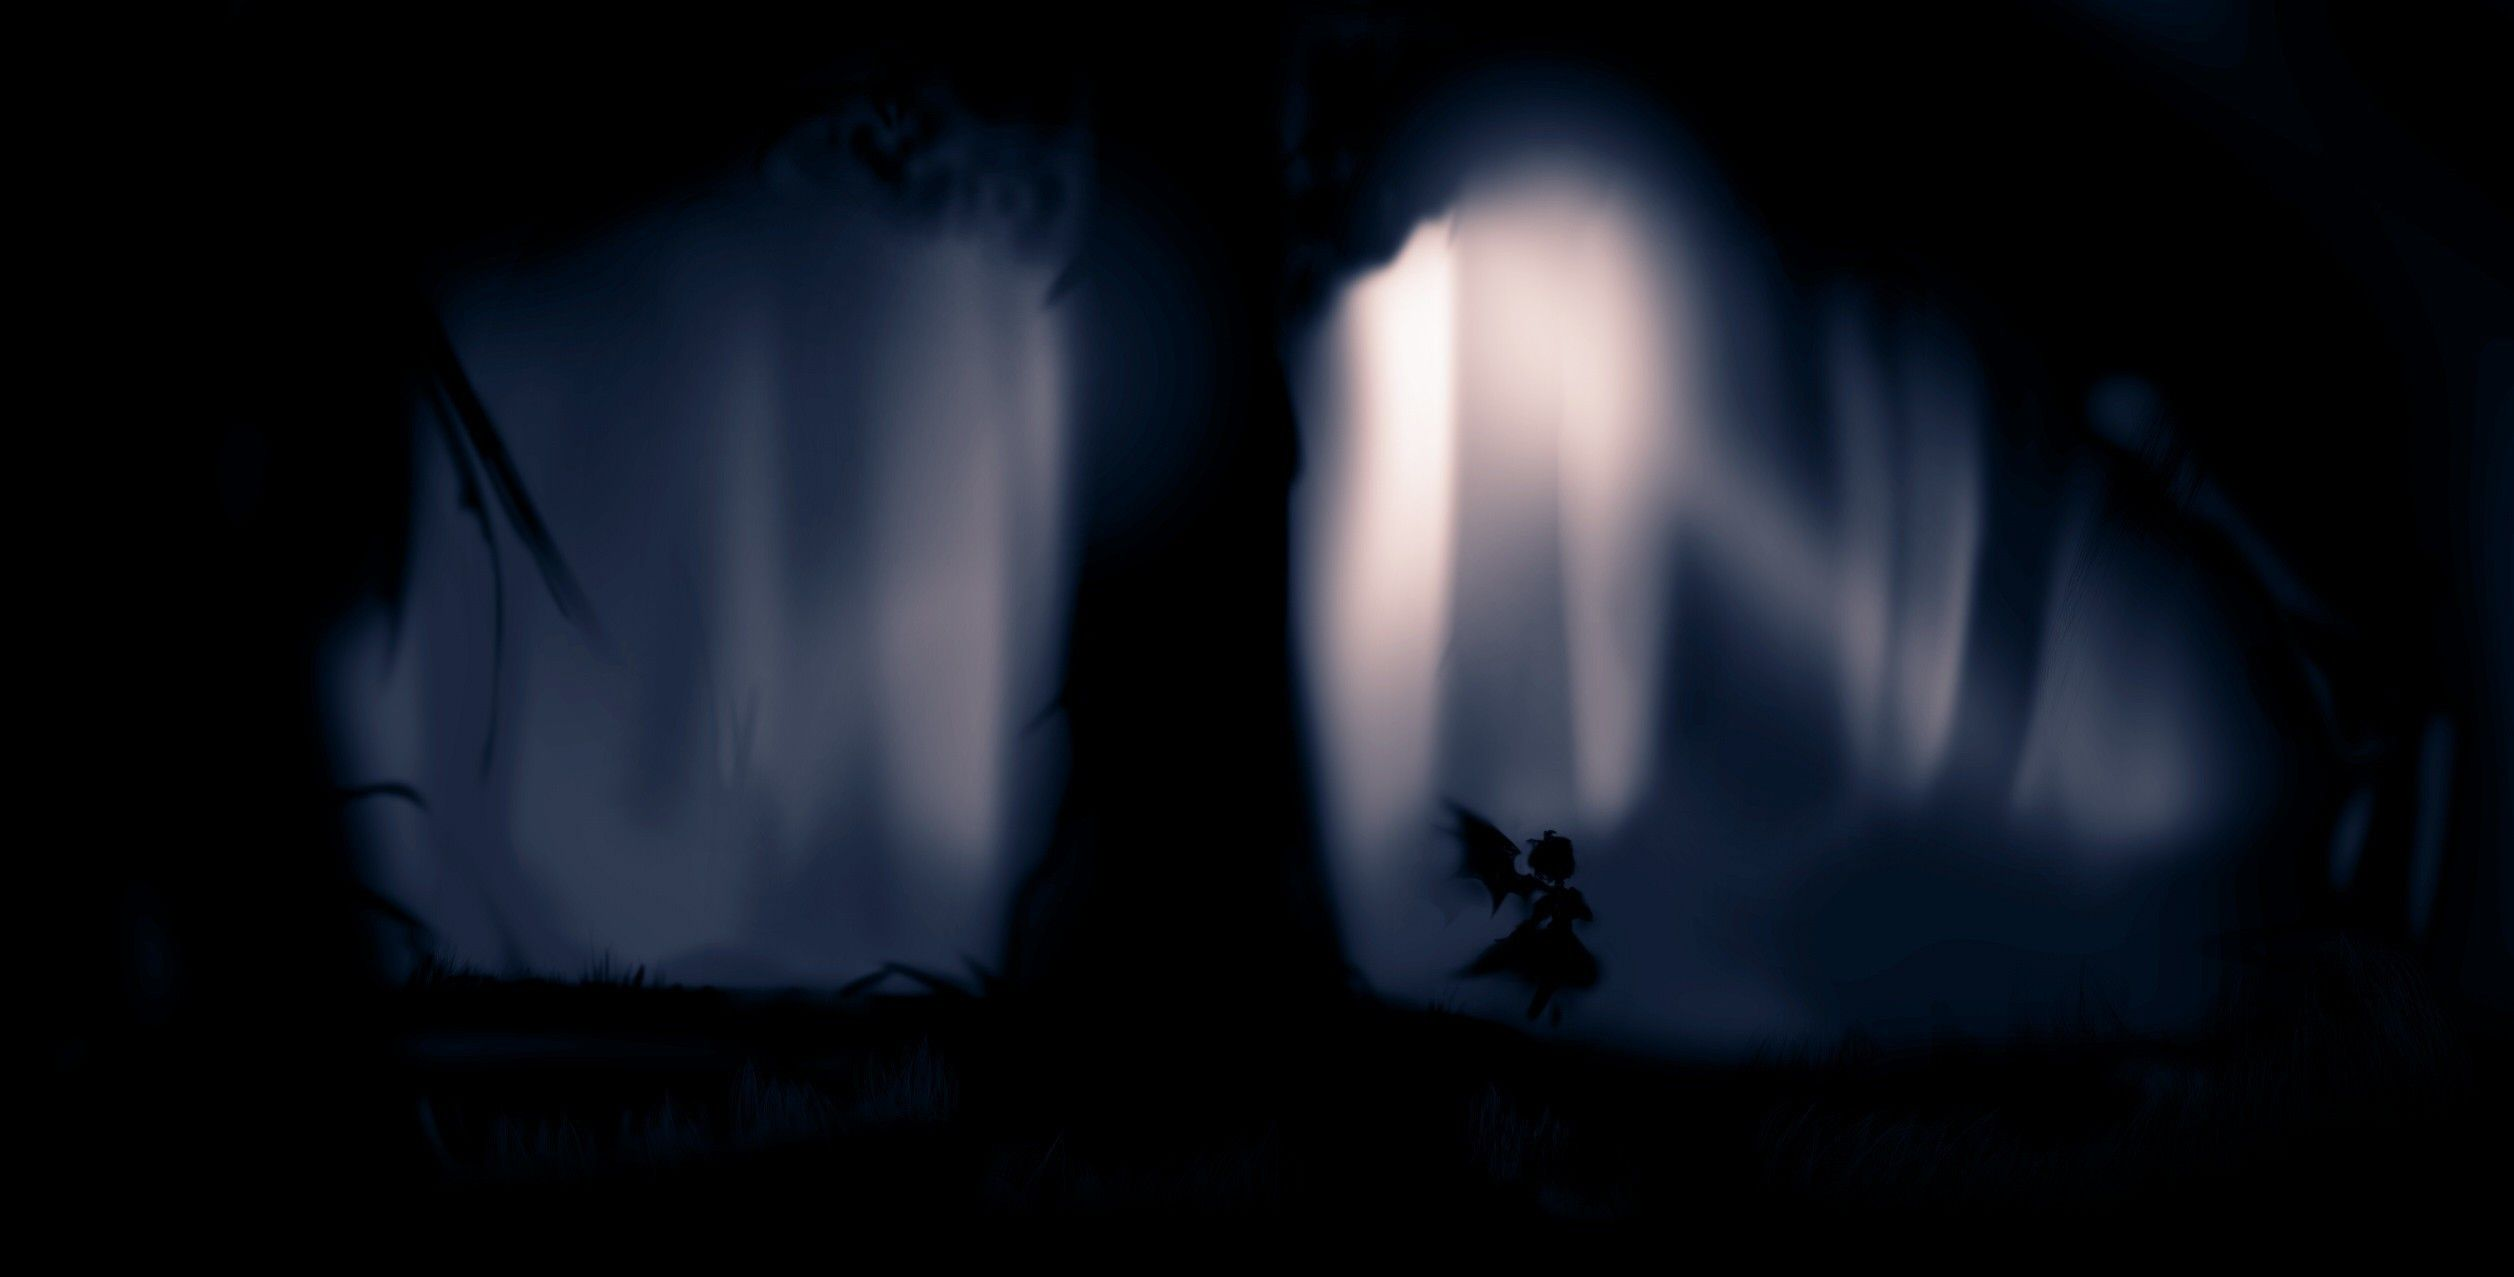 Black trees dark forest silhouette mystia lorelei (2514x1277, trees, dark, forest, silhouette)  via www.allwallpaper.in